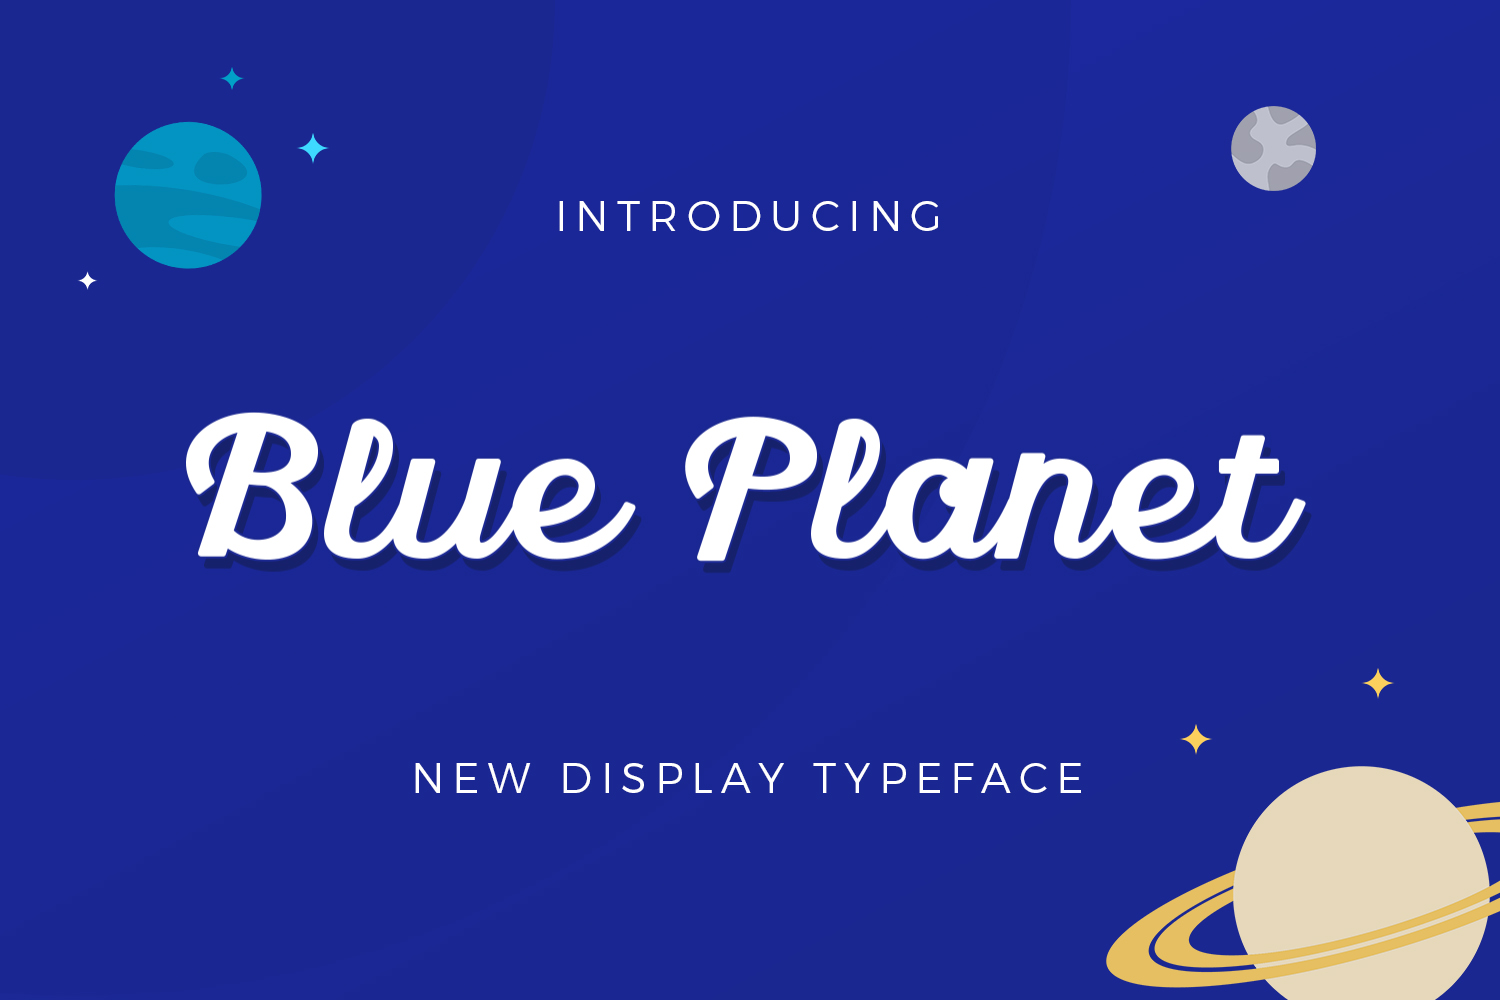 Blue Planet example 1